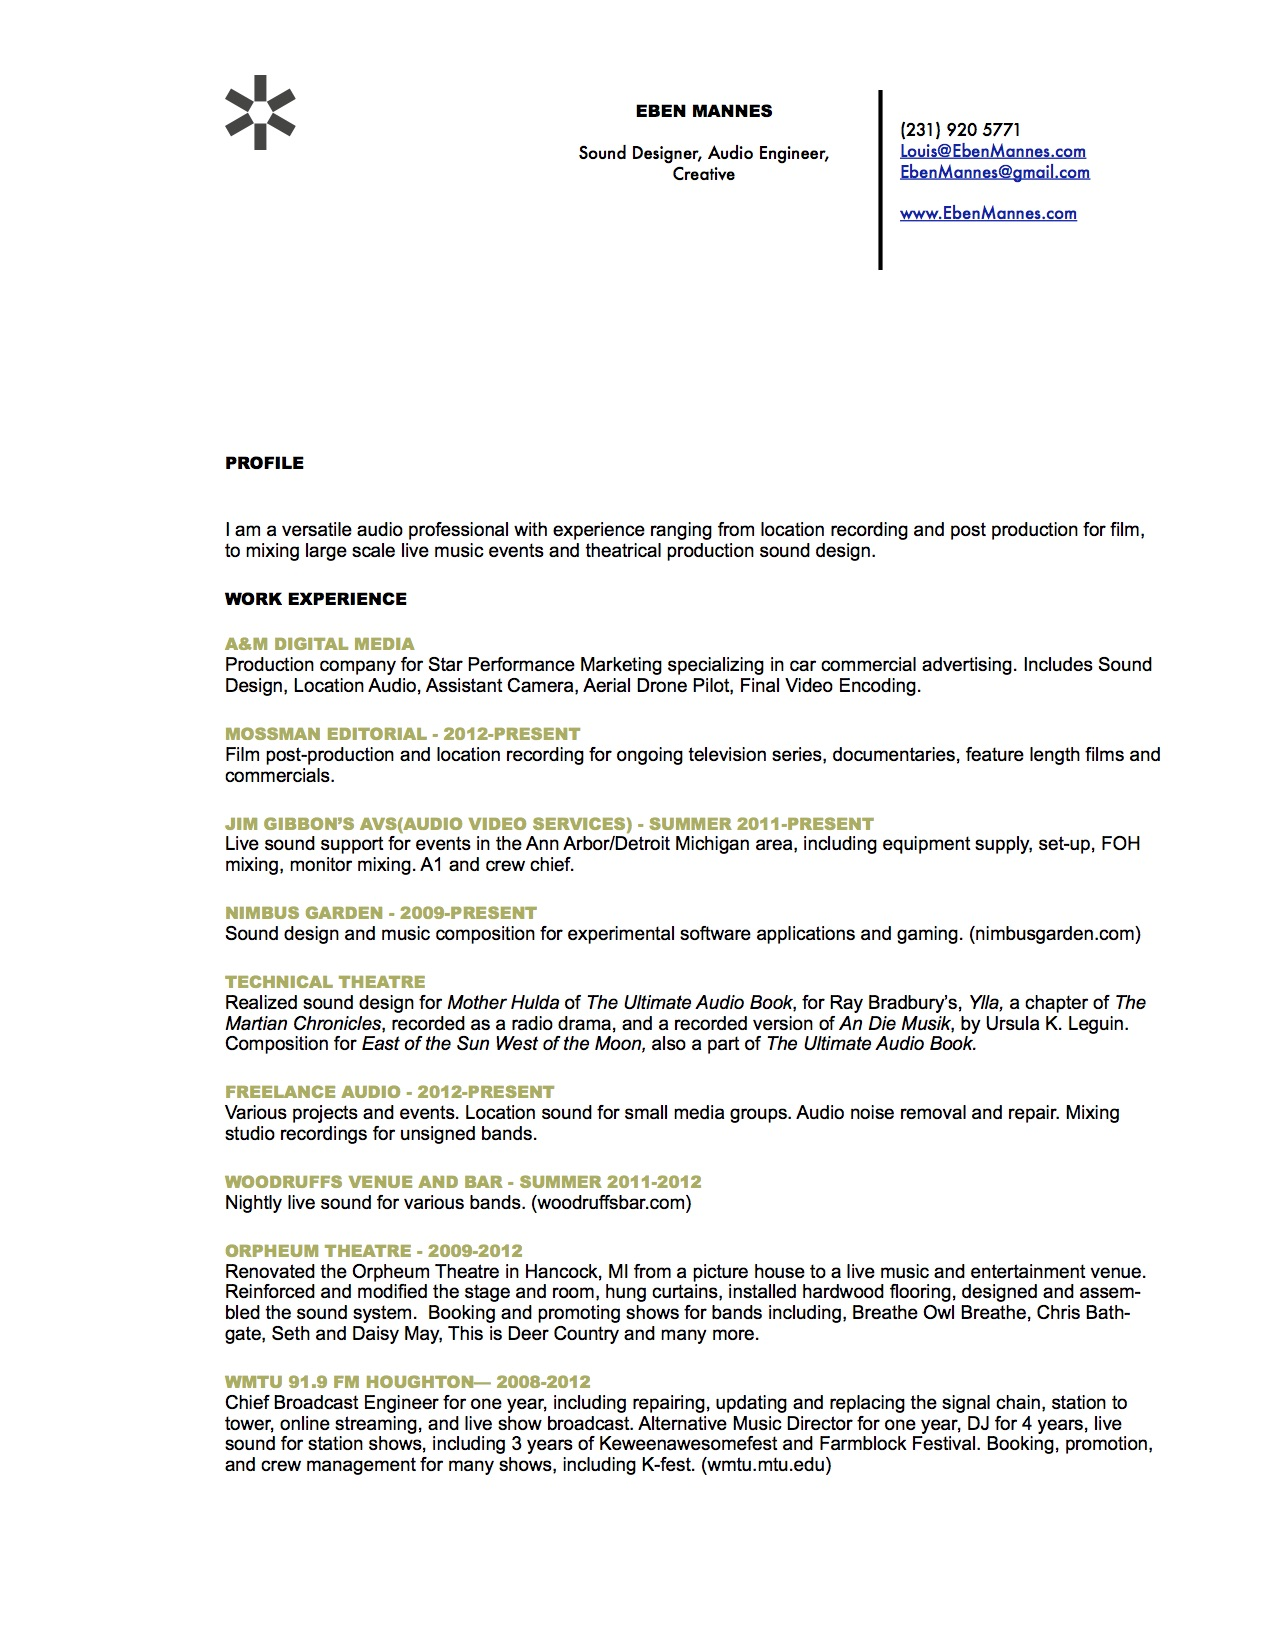 urban planner resume mph resume objective by sample winning